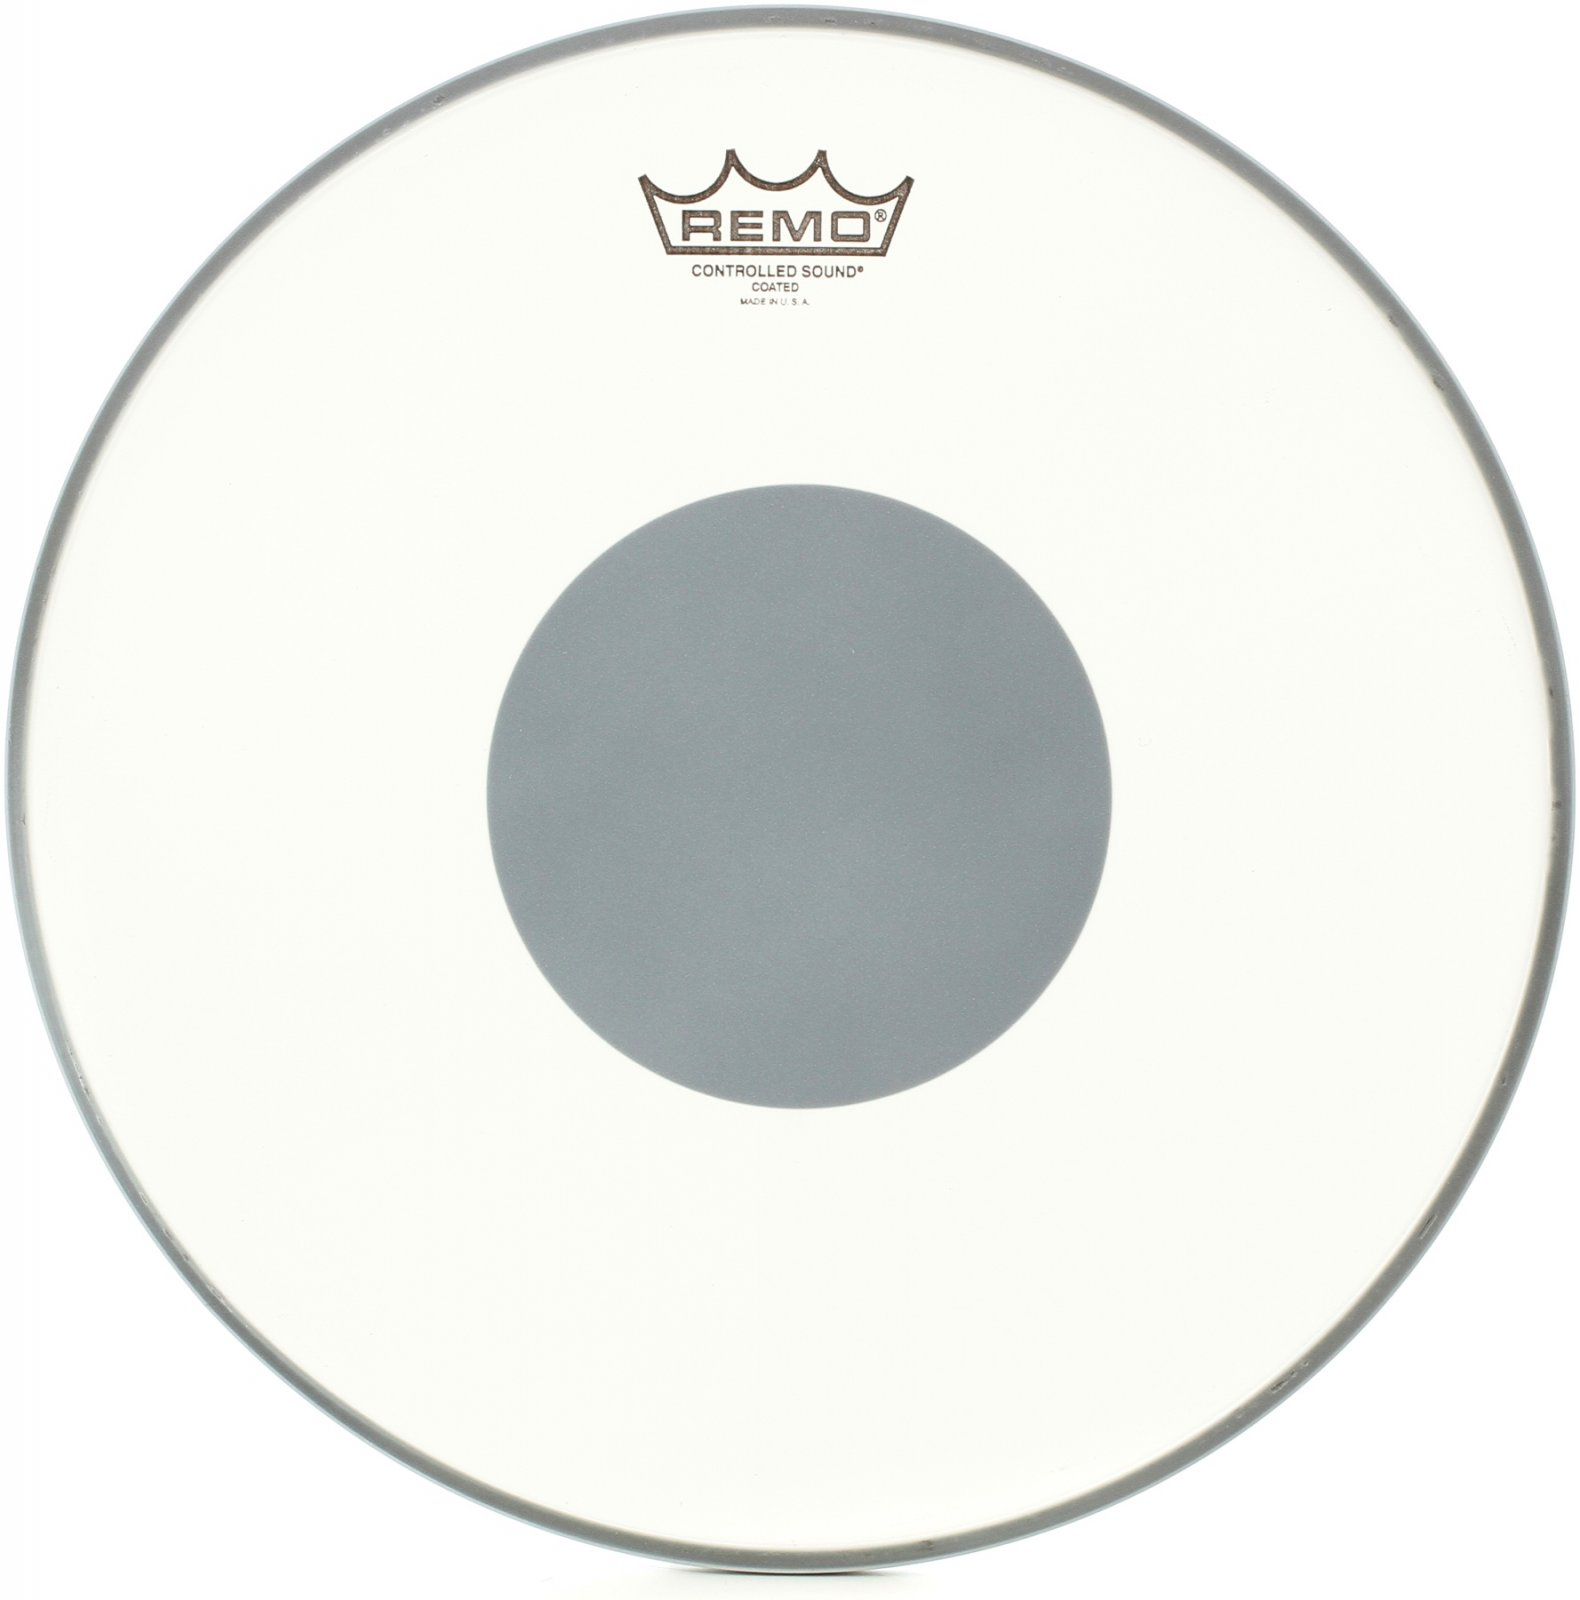 REMO CS/ CLEAR/ WHITE DOT BATTER 18 HEAD